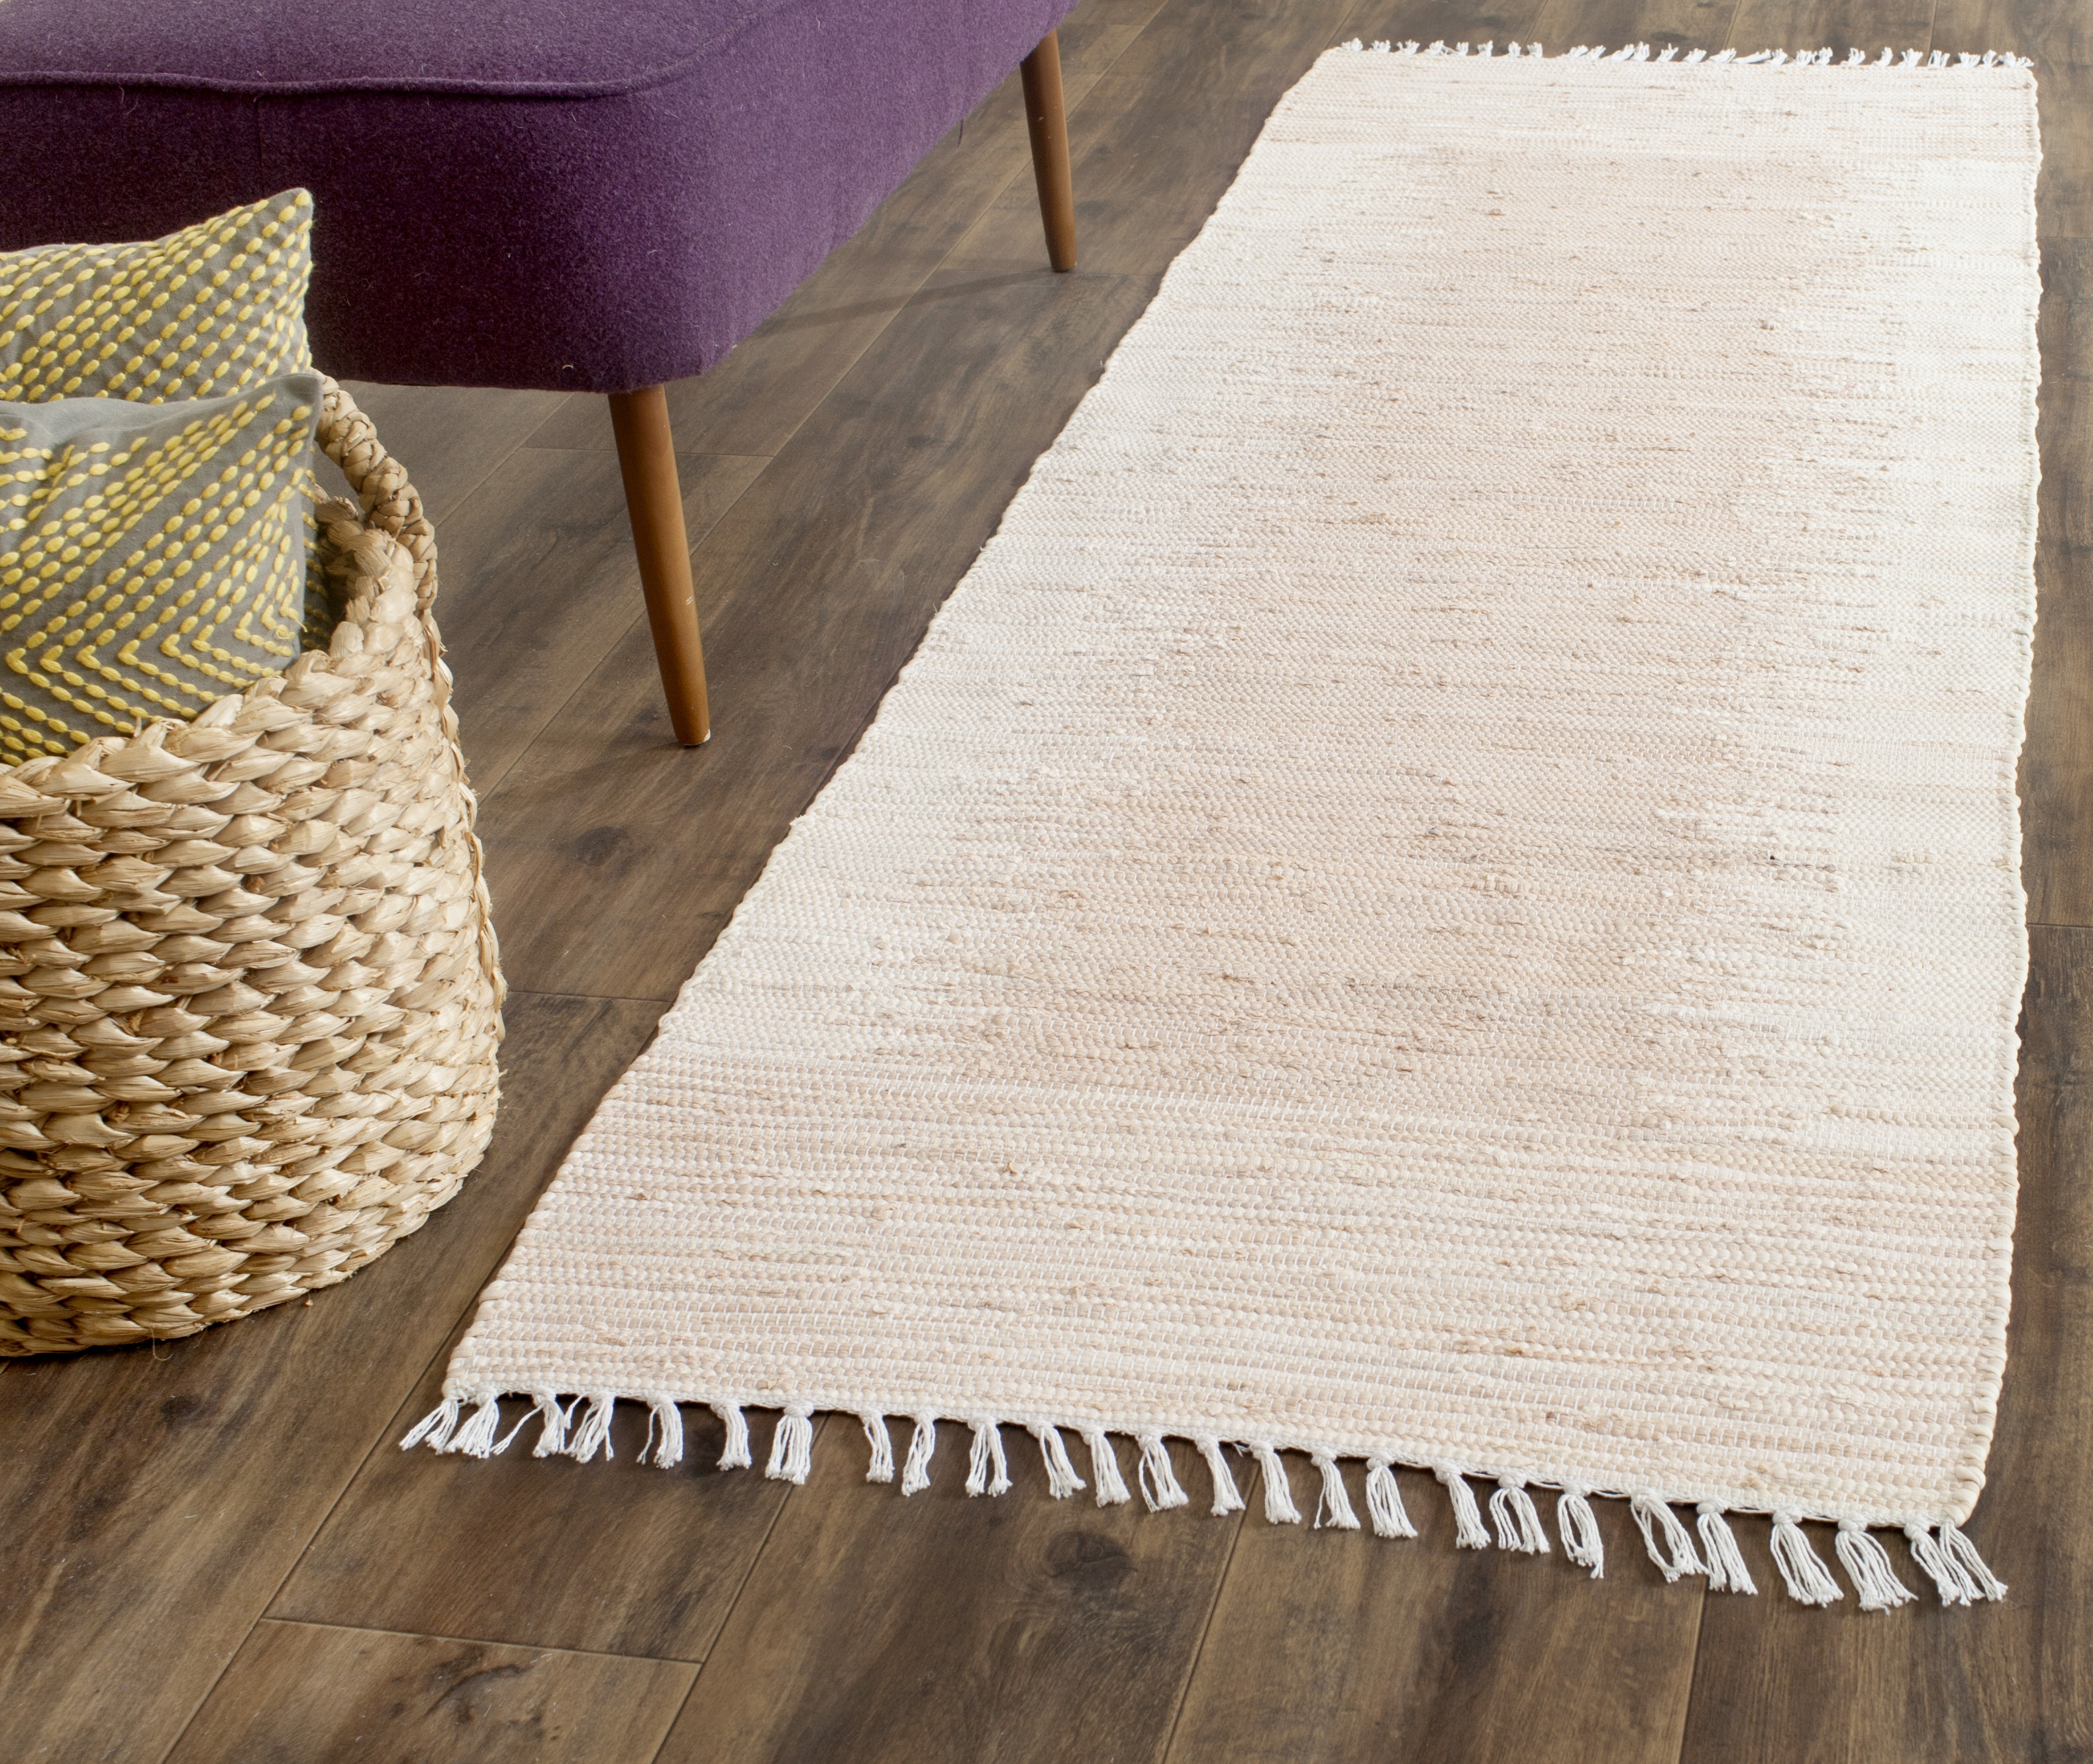 How To Pick Out An Area Rug 15 Best Collection Of Wool Flat Weave Area Rugs